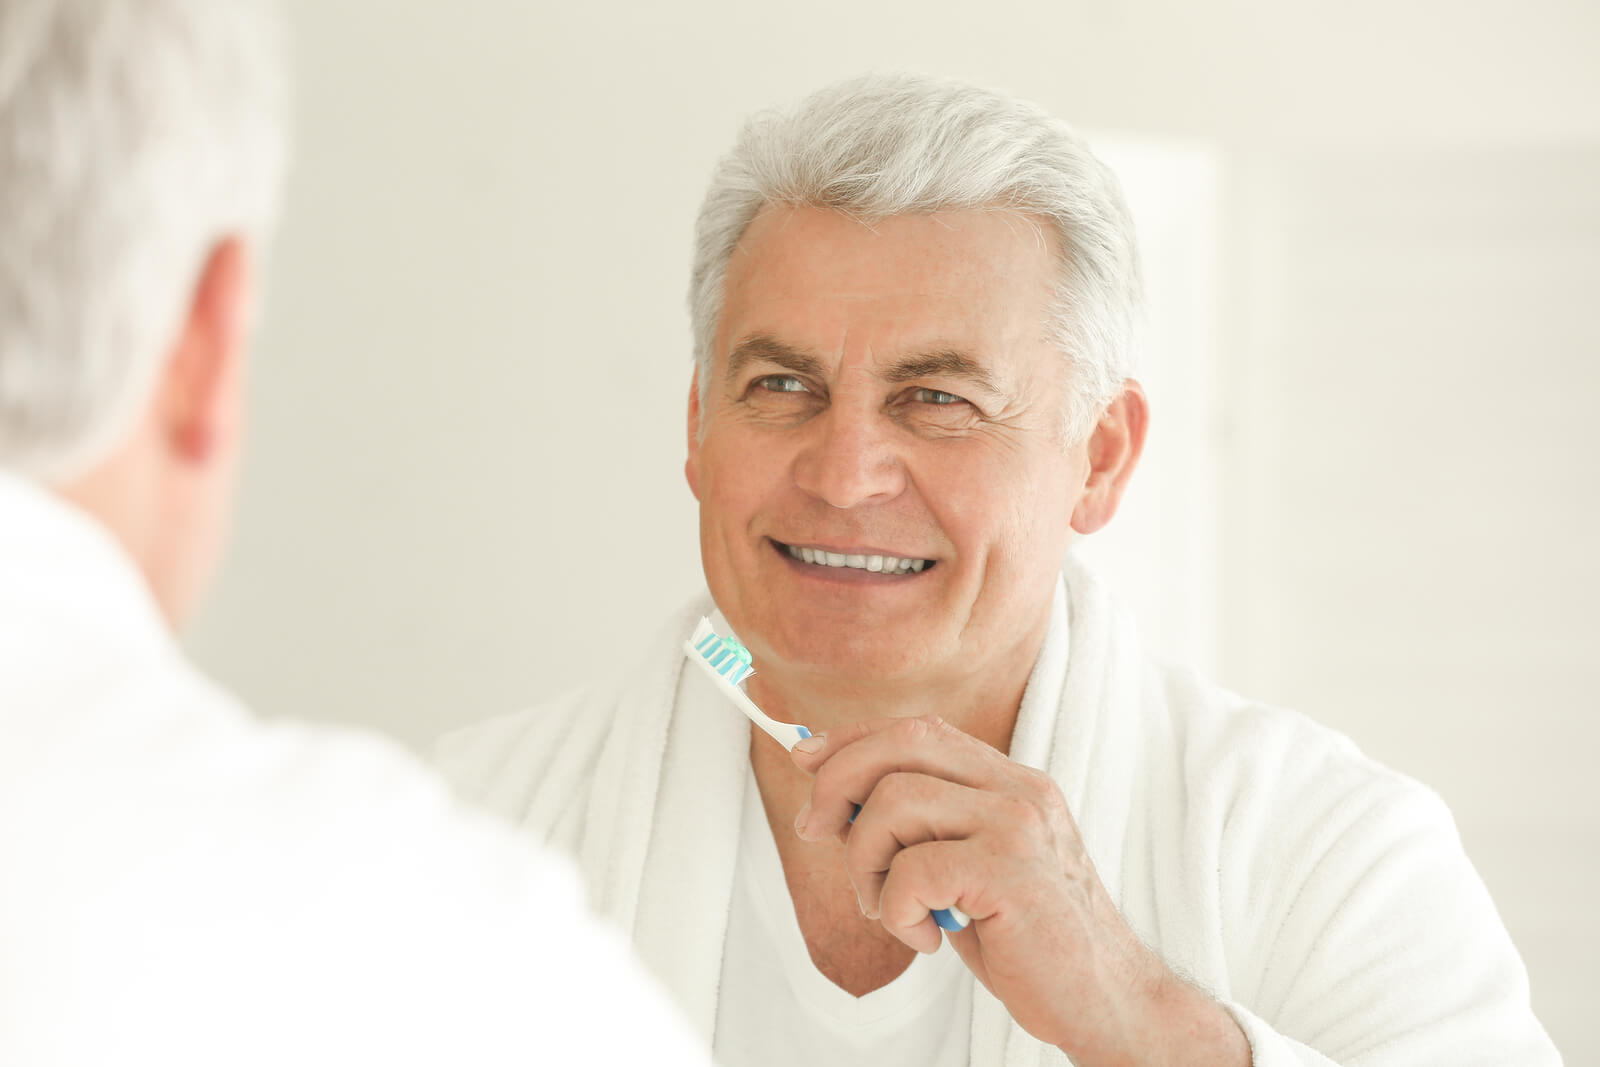 Seniors & Oral Health: A Caregiver's Guide